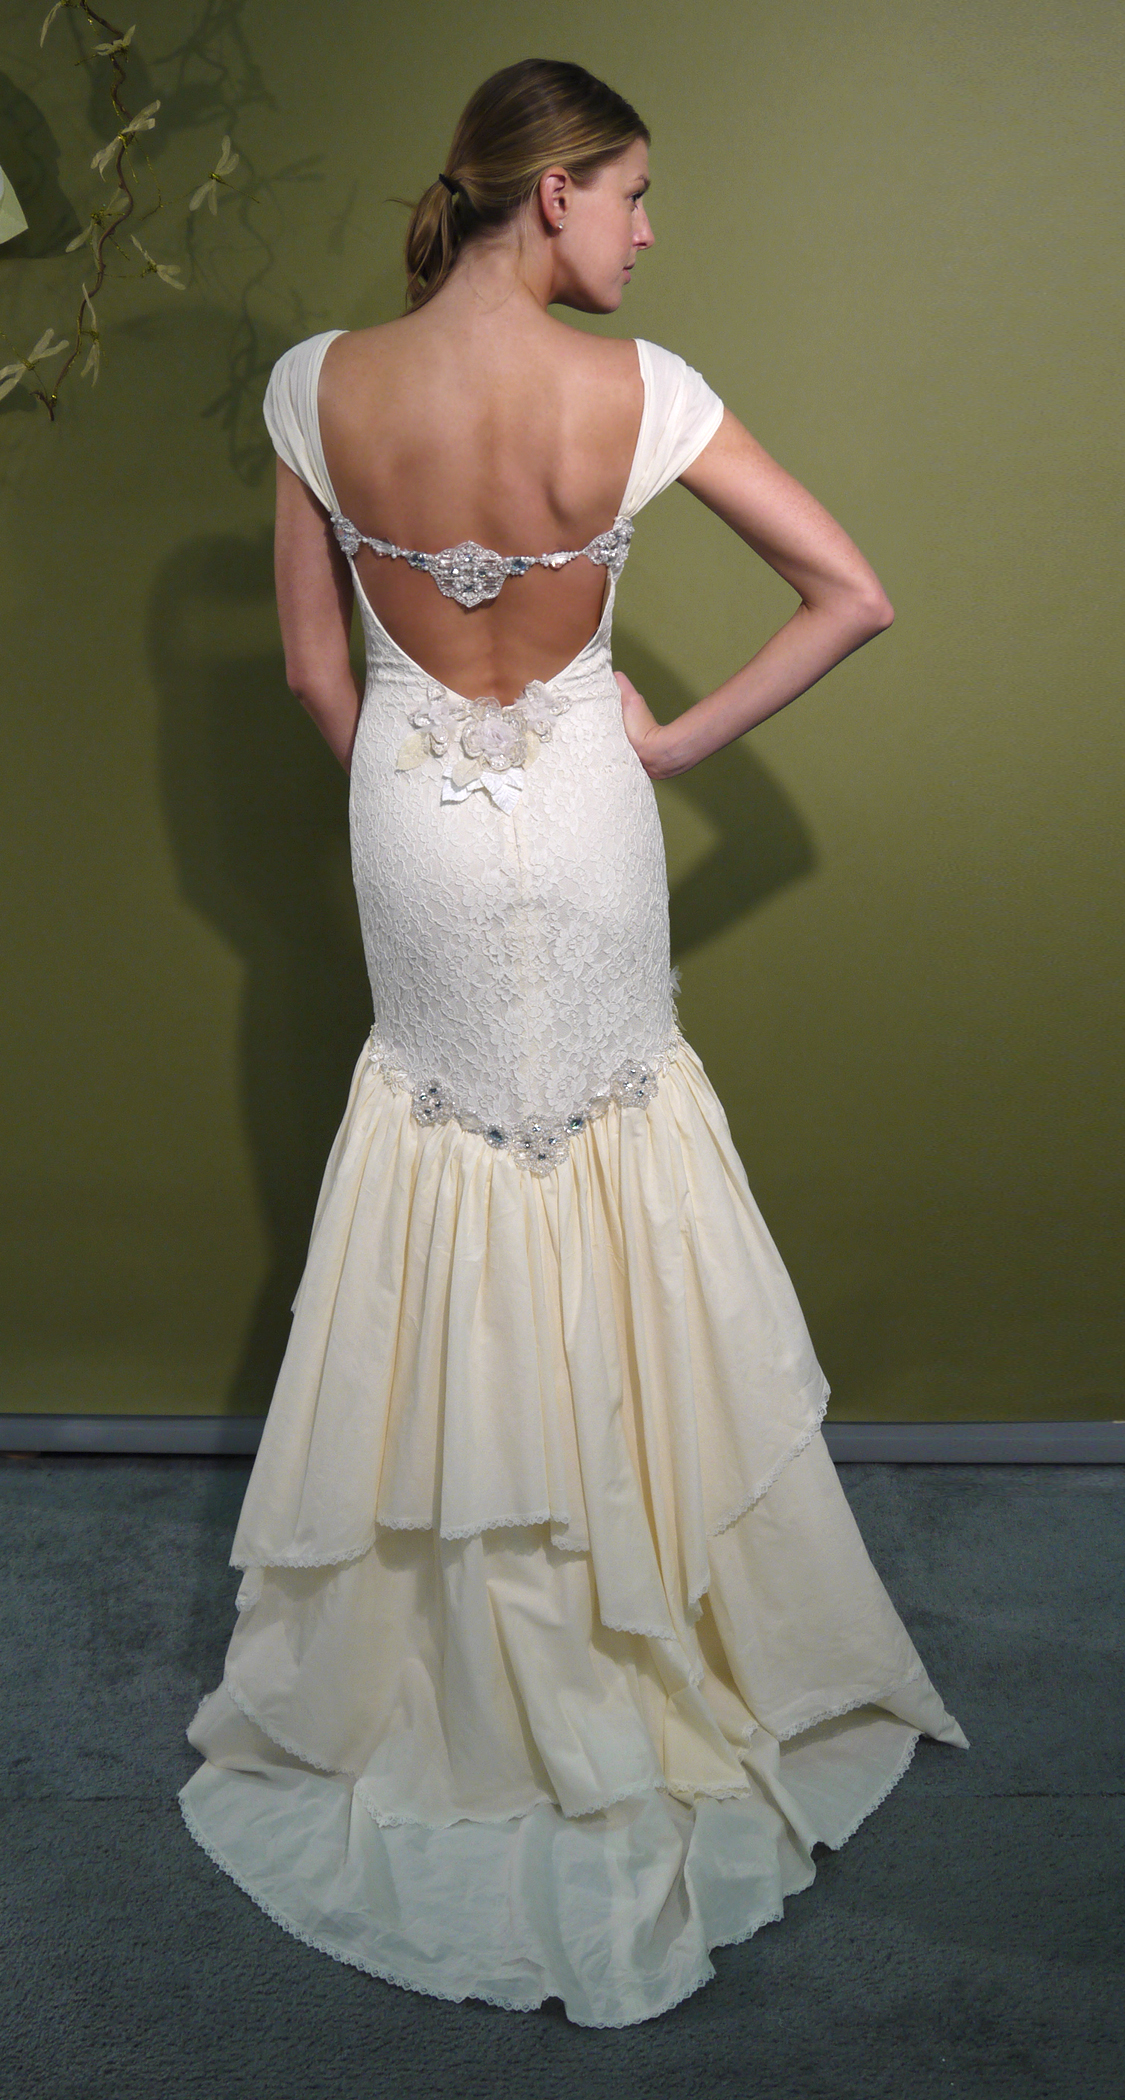 Ivory mermaid claire pettibone wedding dress with beading for Lace wedding dresses open back